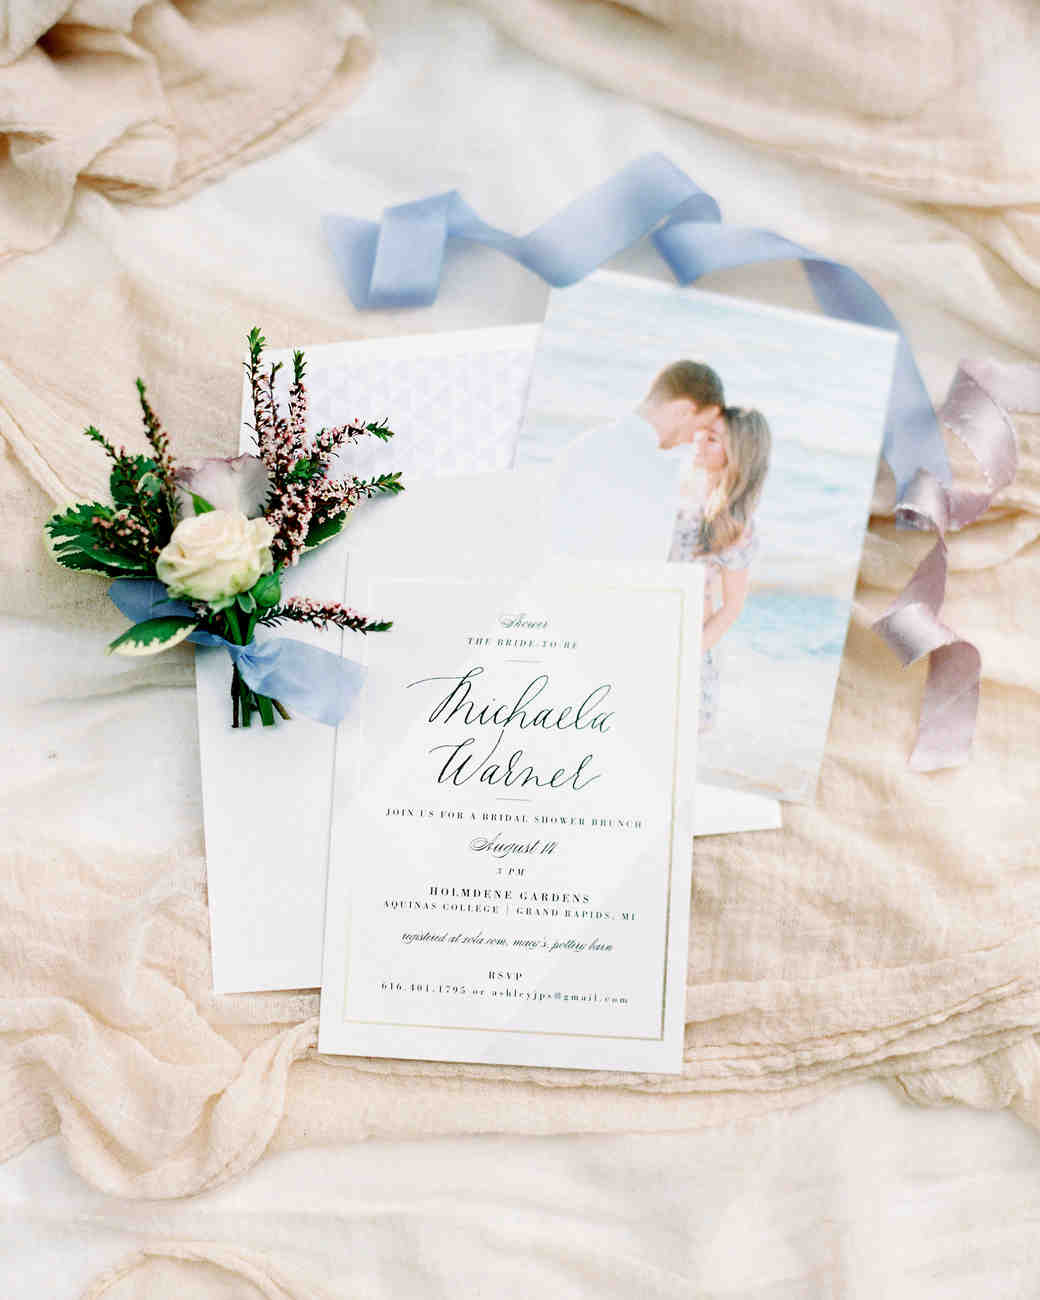 Bridal shower invitations we absolutely love martha stewart weddings bridal shower invitations ashley slater filmwisefo